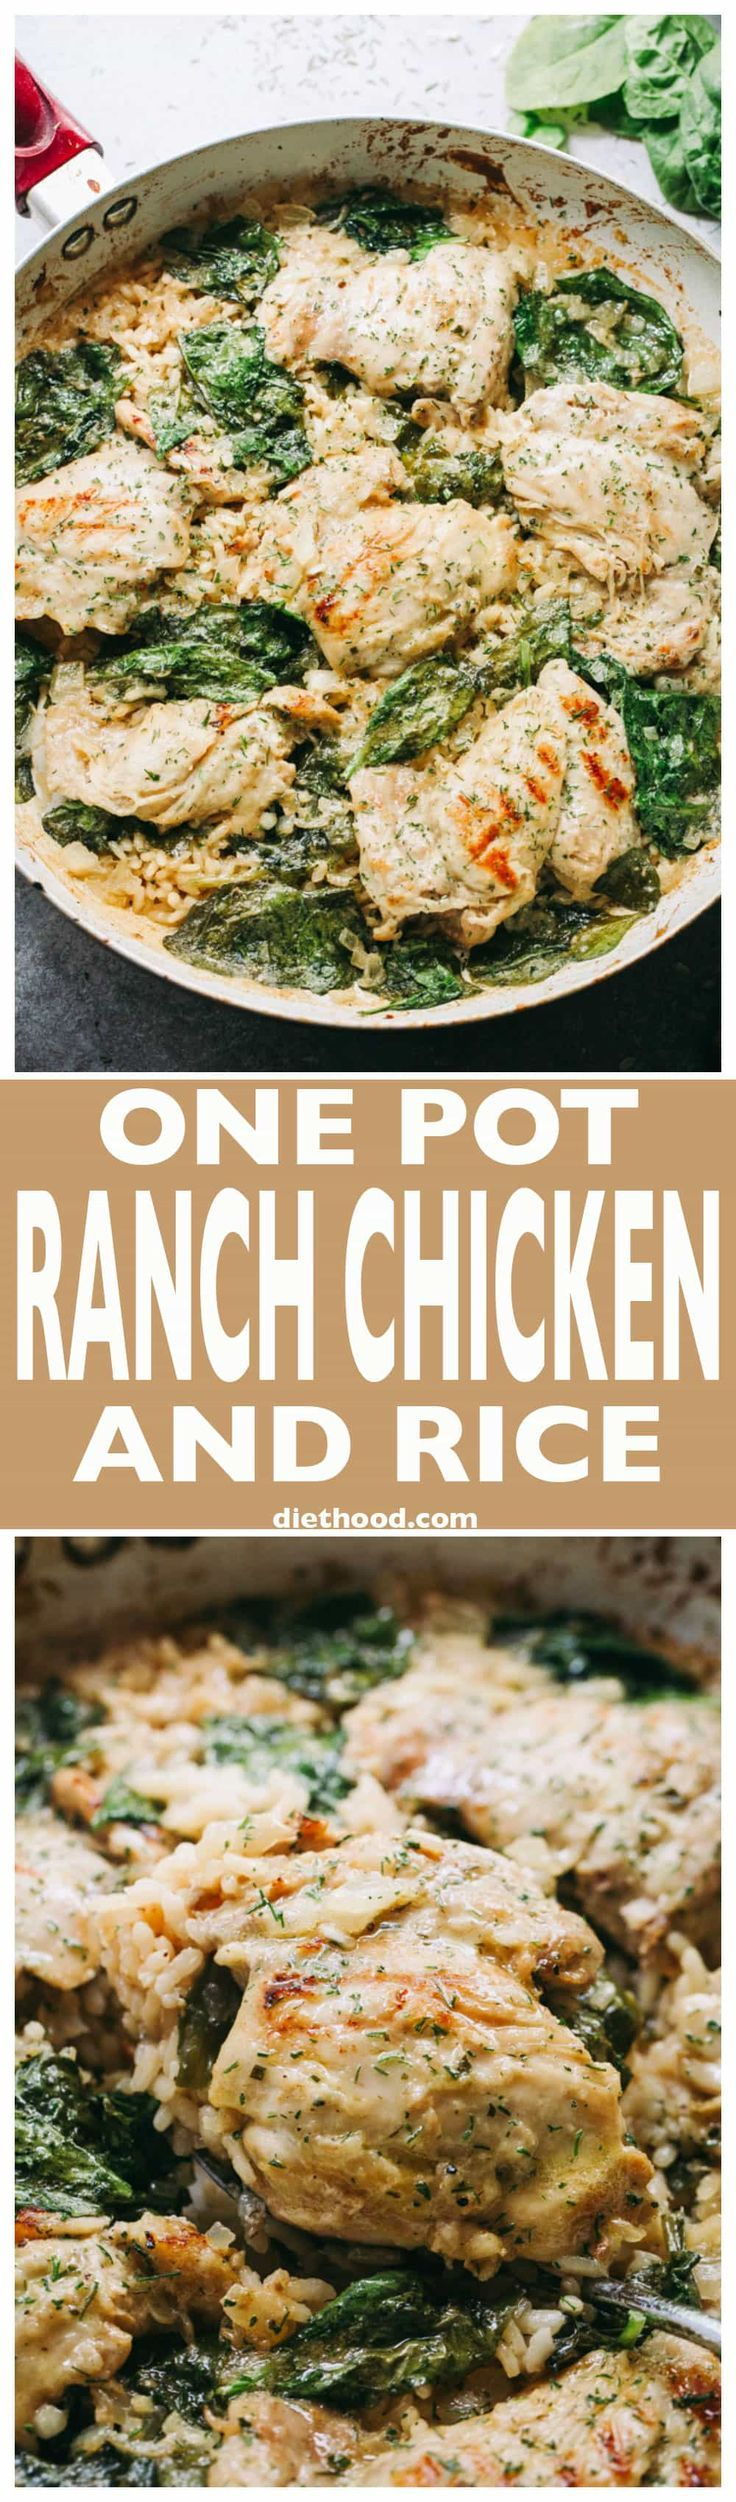 1141 best comfort food images on pinterest kitchens biscuit one pot ranch chicken and rice easy quick and delicious ranch flavored chicken cooked in one pot with rice and spinach via bake rice comfort foods forumfinder Images